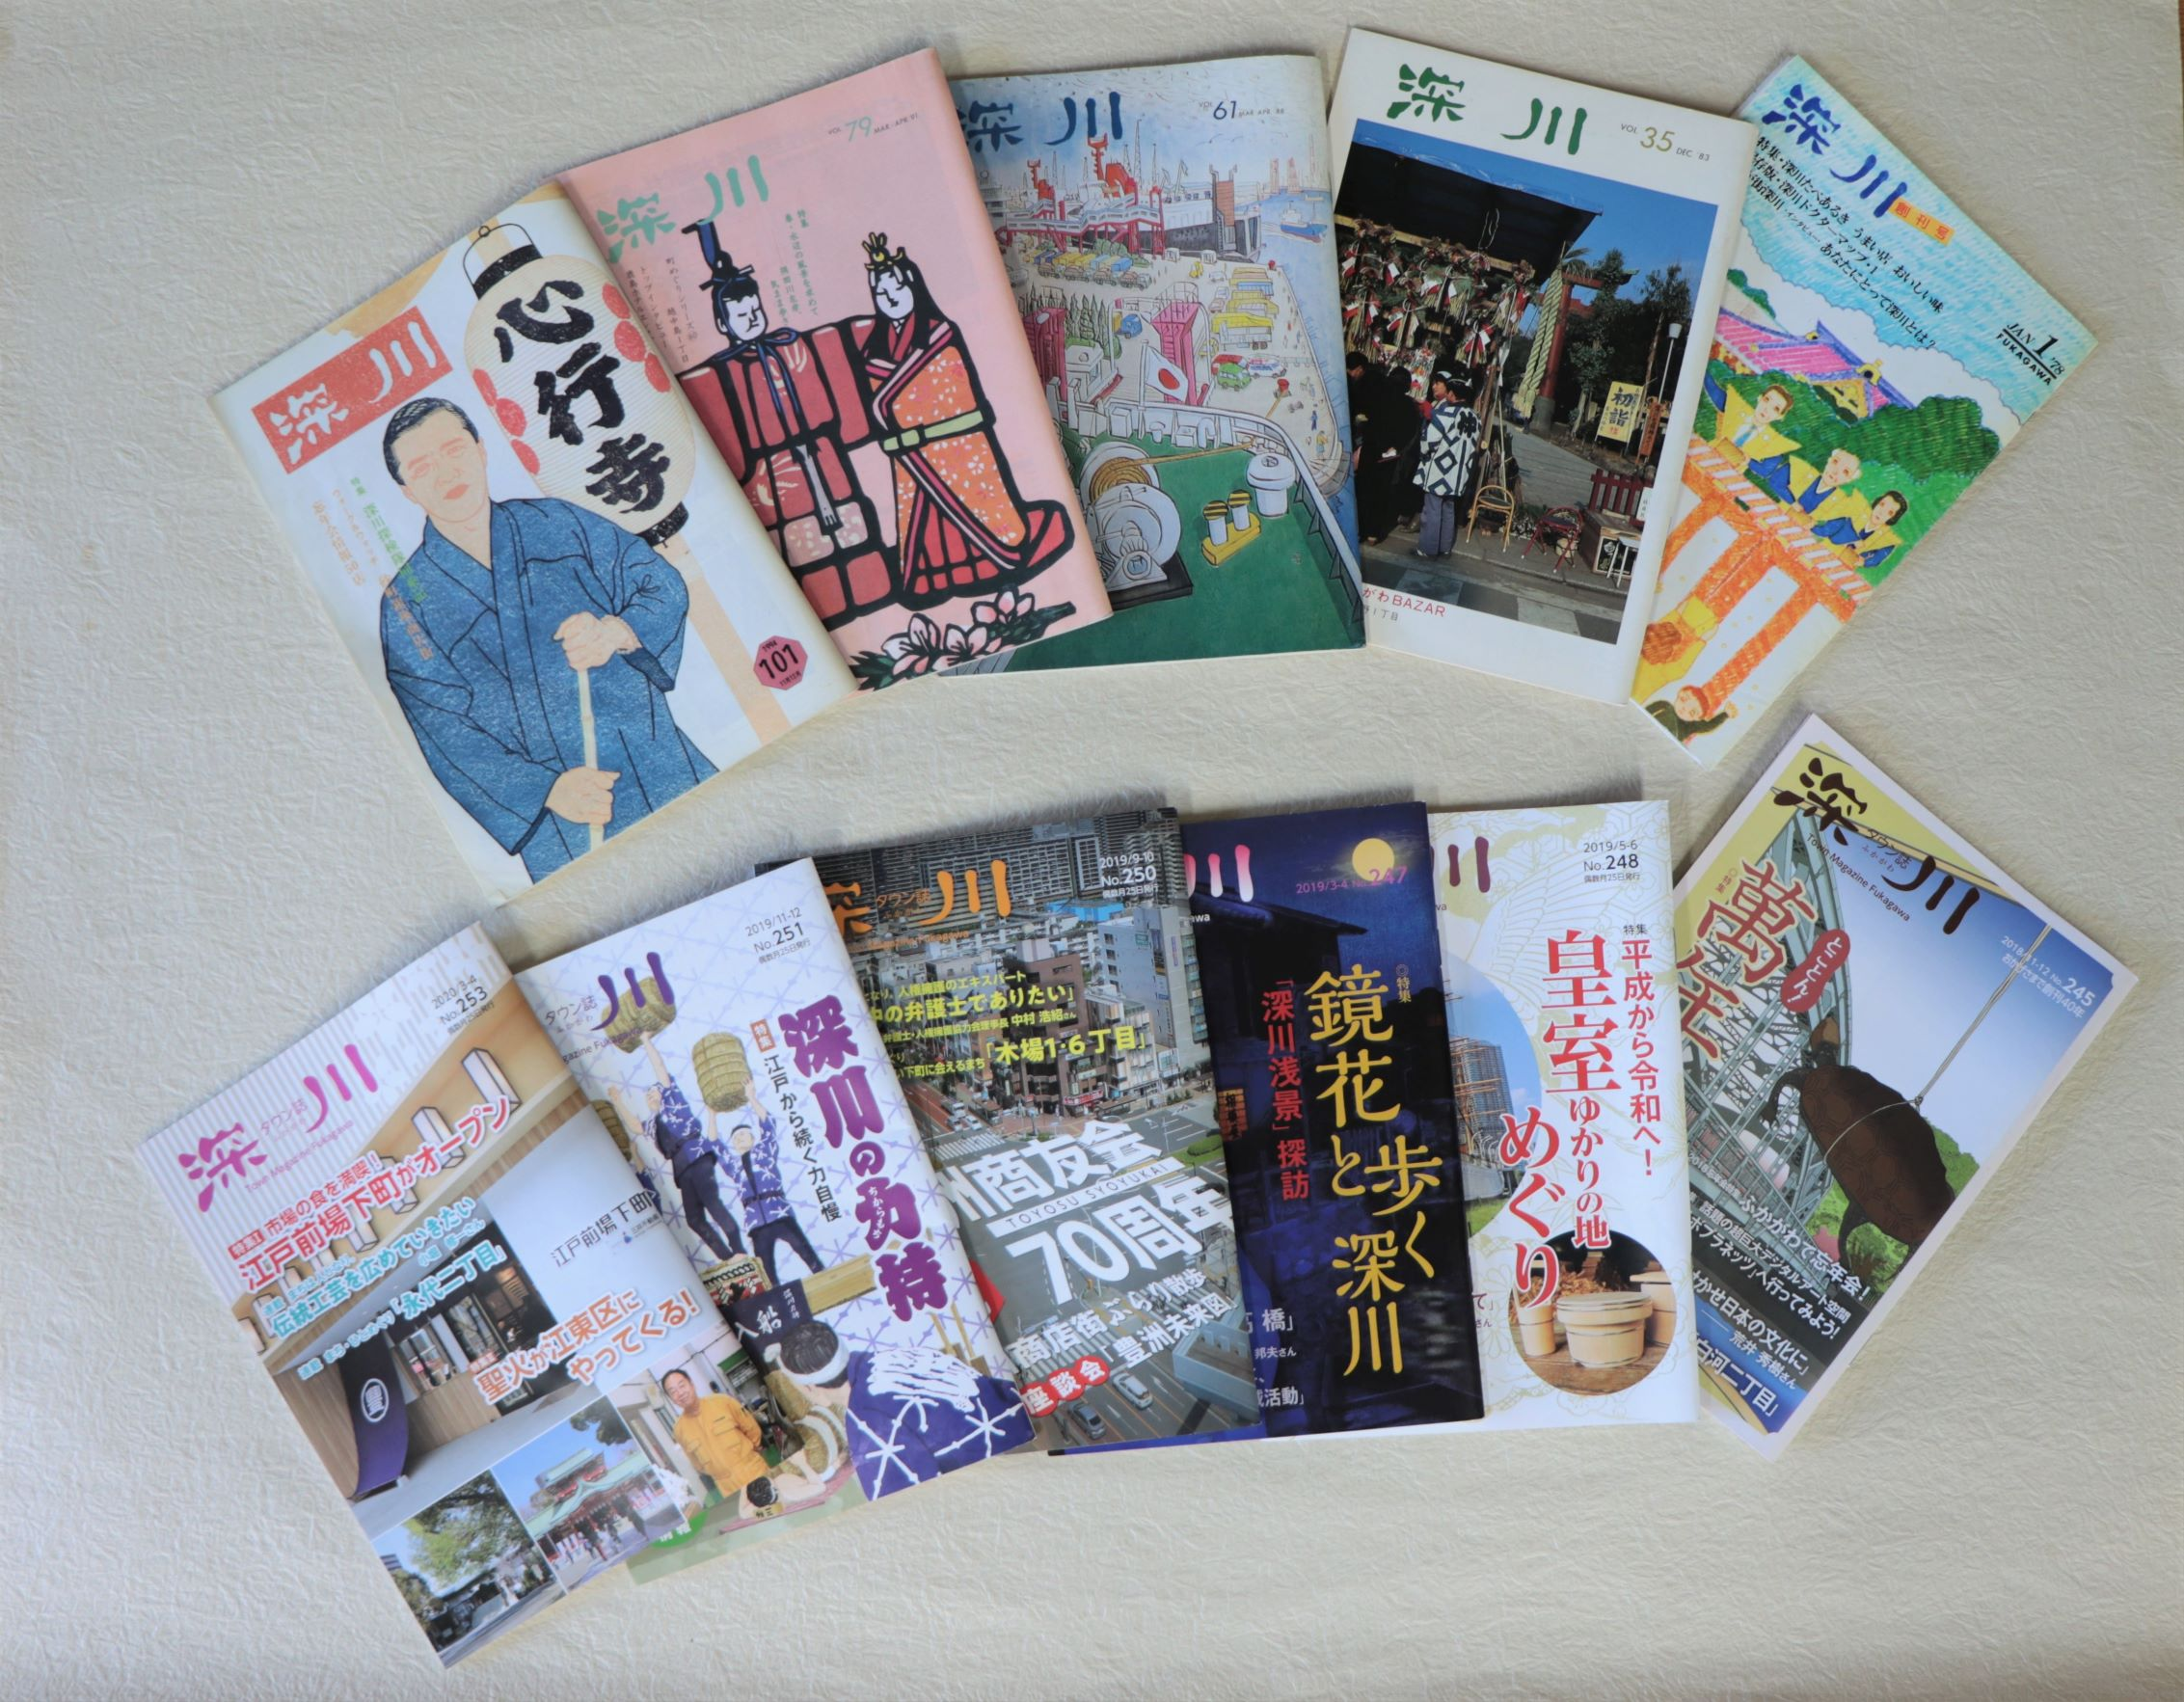 "[Koto Who's who in Koto-ku] Town magazine ""Fukagawa"" which we launched in town magazine ""Fukagawa"" publisher Kikko Suzuki 1978. Contents which are wide to 253 to people and history, culture of Fukagawa which we are issuing now."